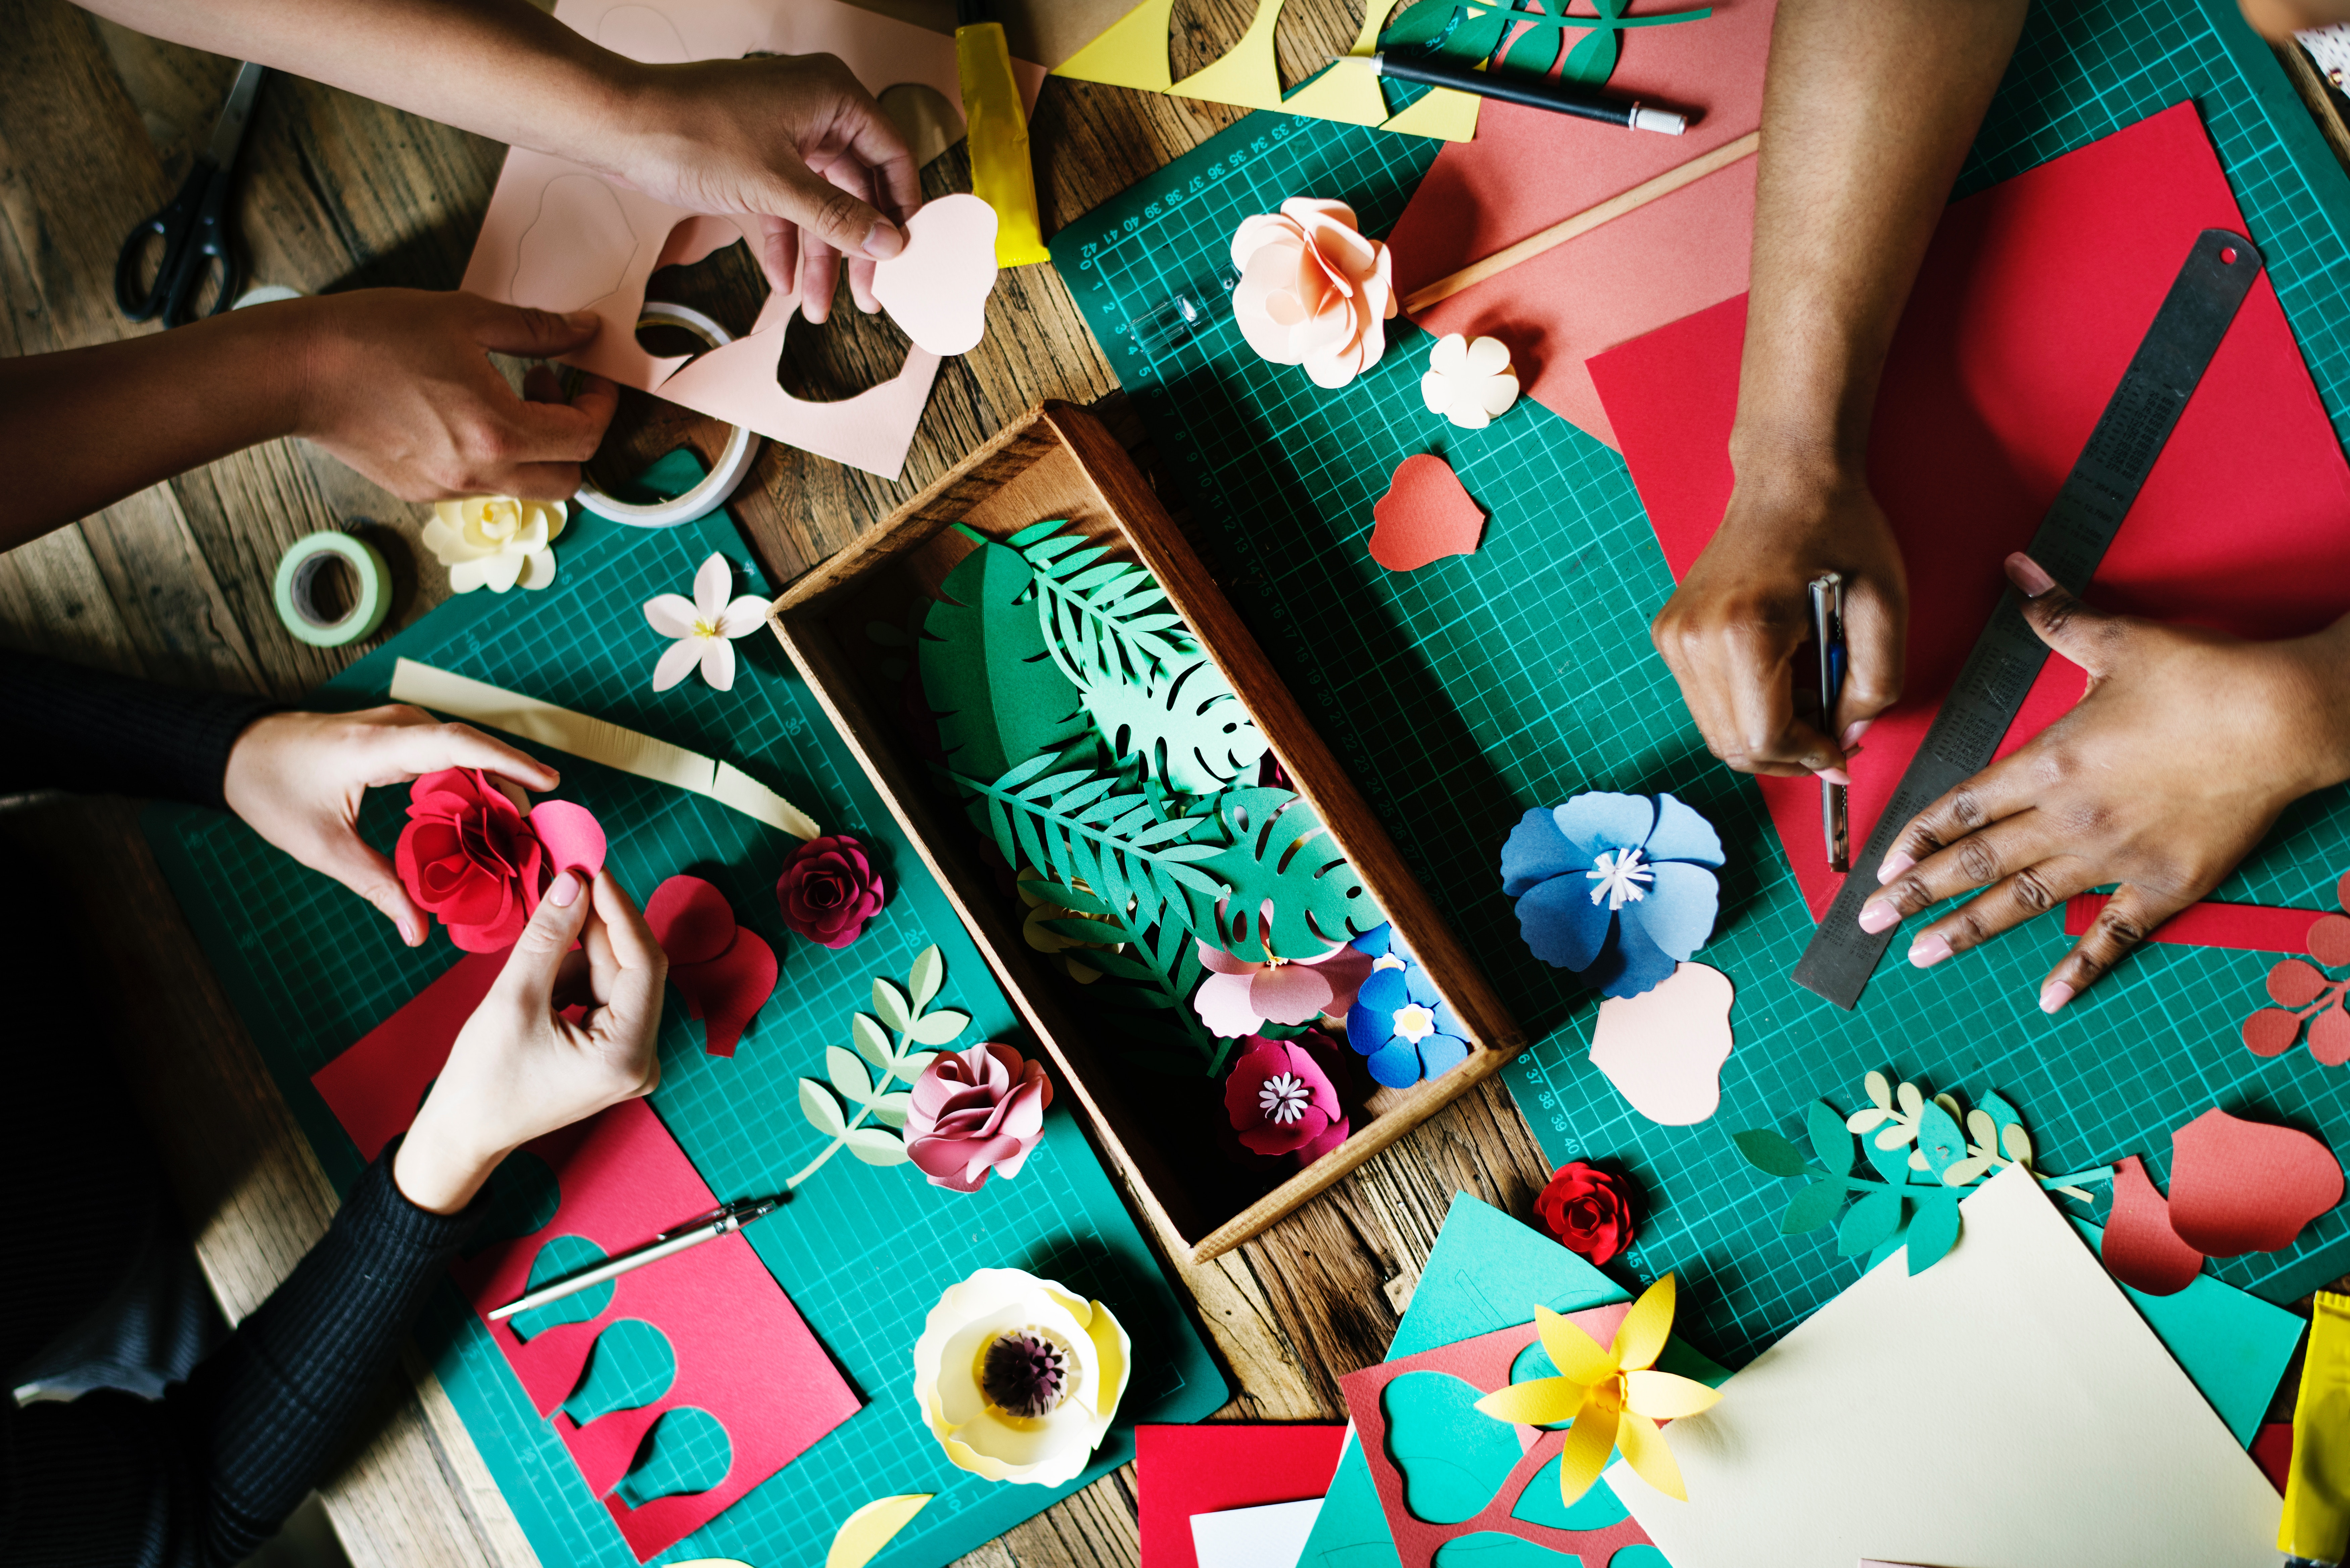 Colourful Crafts